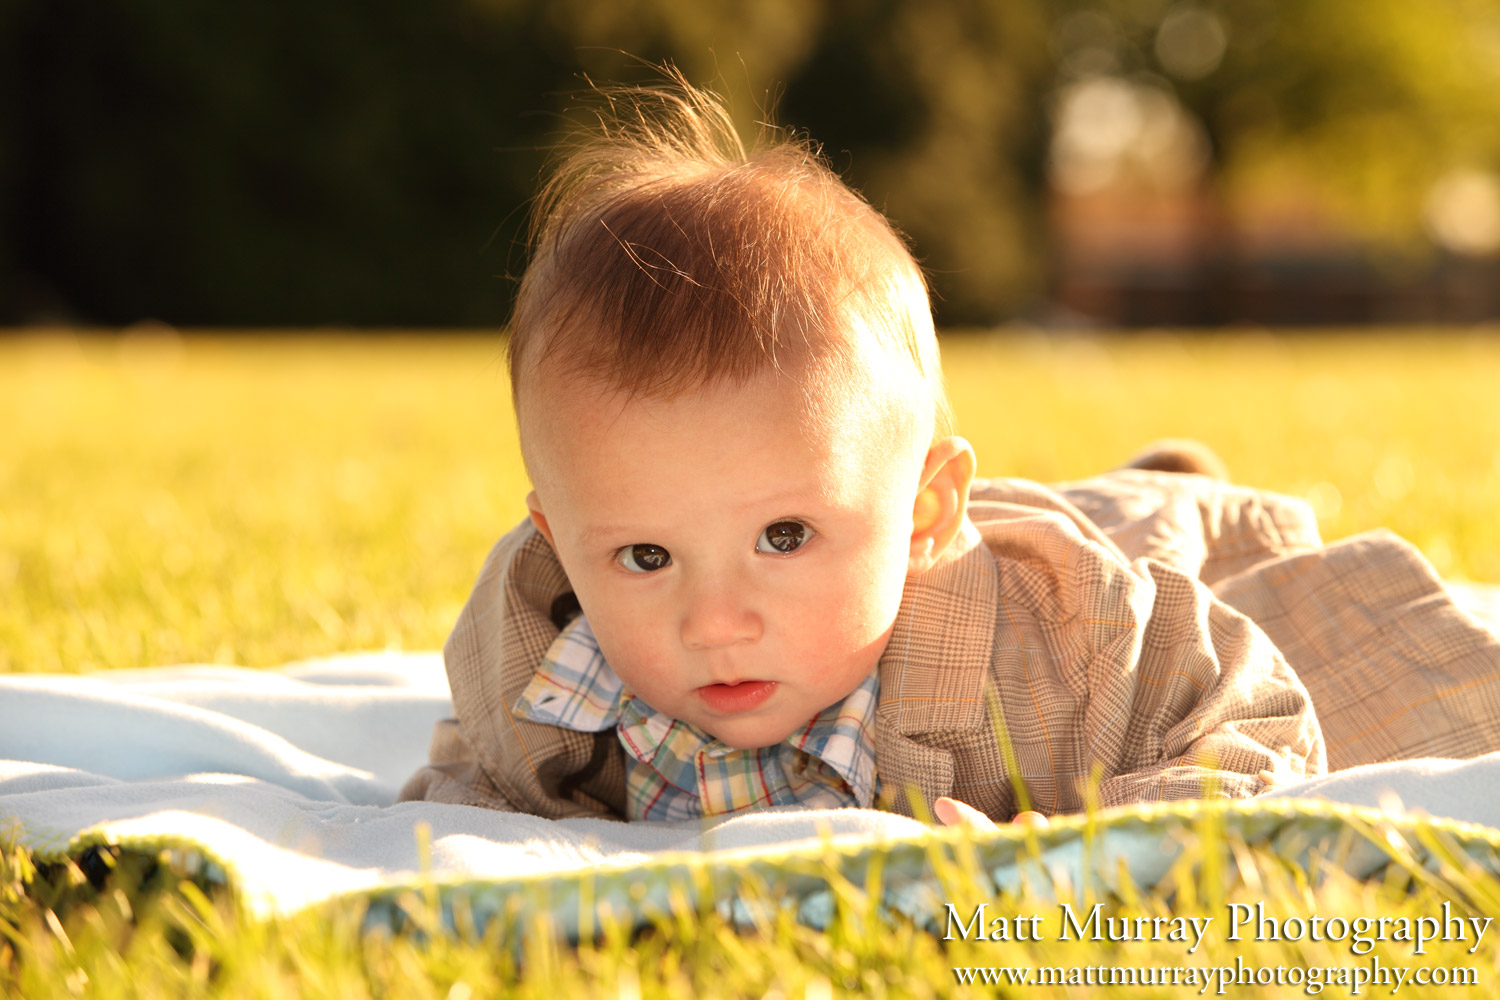 Vancouver Baby Portraits Photography Service